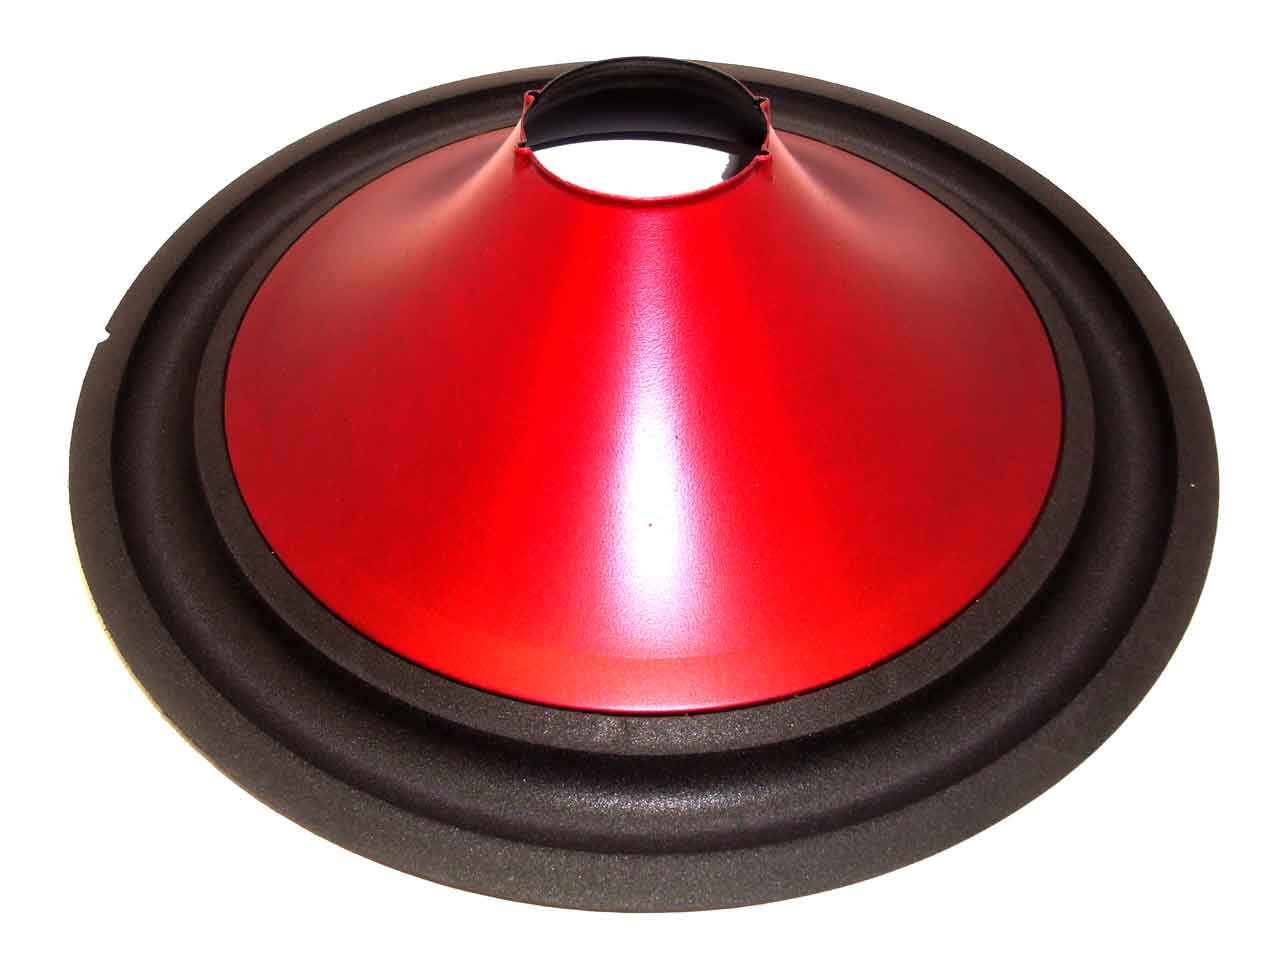 Genuine 15'' Rockford Fosgate Punch Series Poly Subwoofer Cone with Surround - P315D2 P315D4